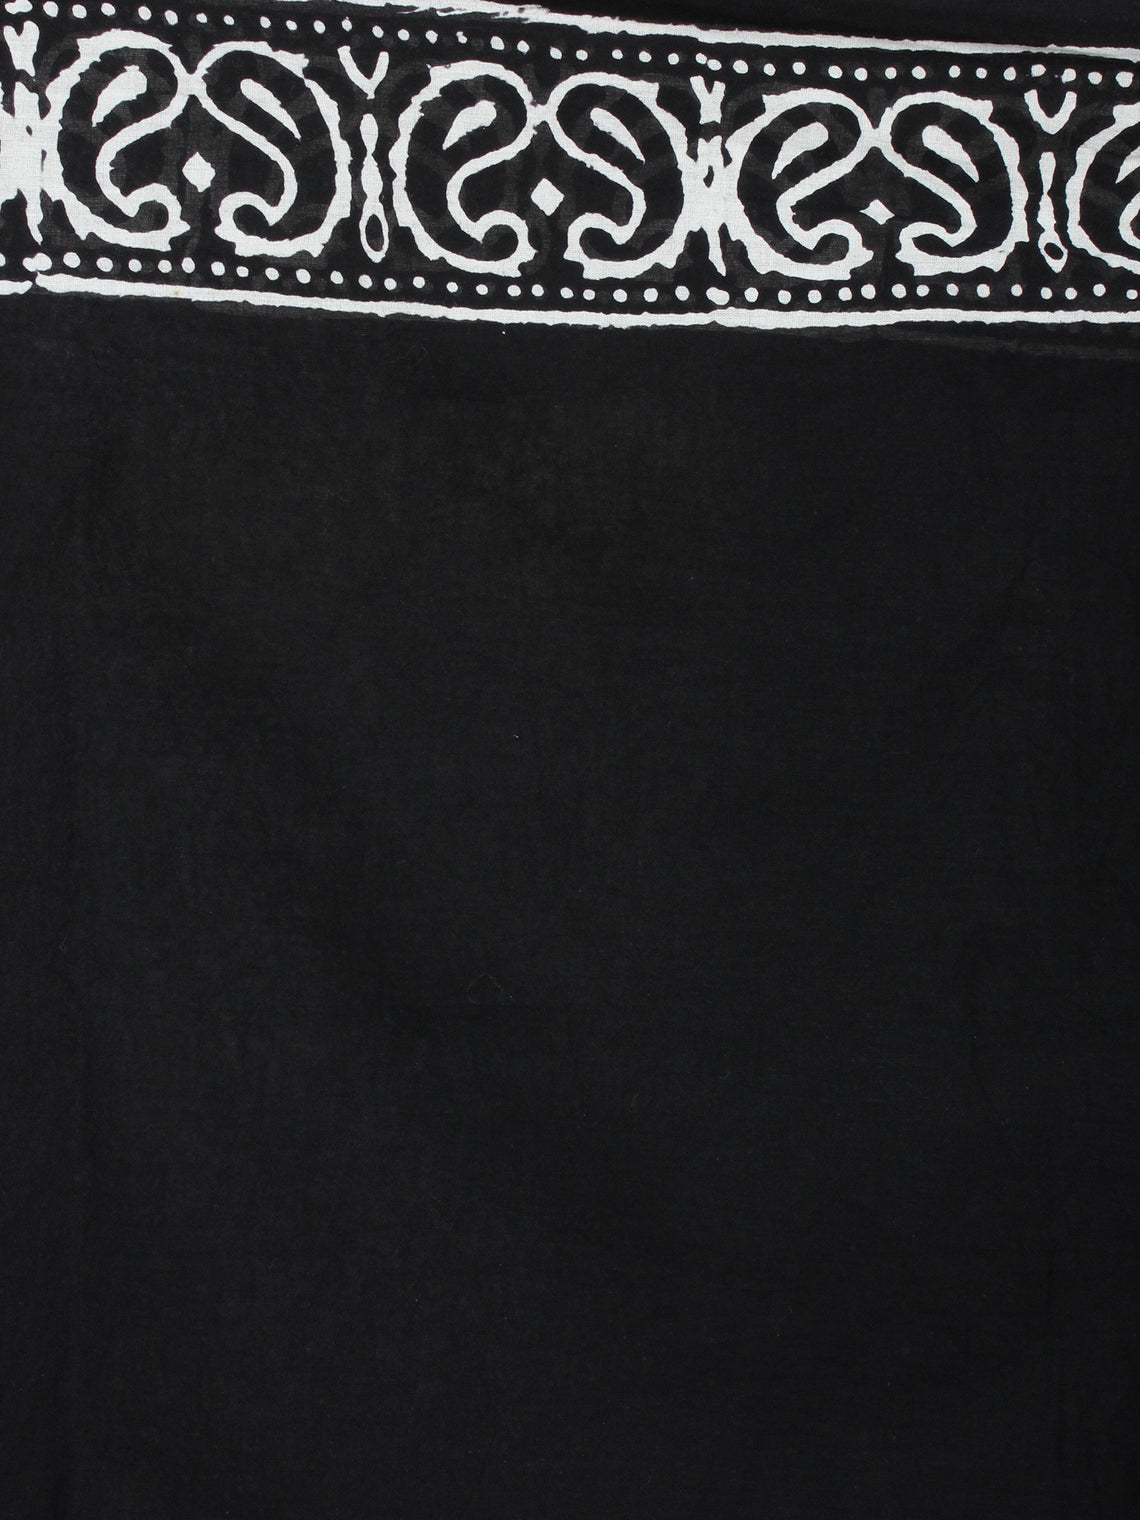 Black White Cotton Hand Block Printed Saree in Natural Colors - S03170522